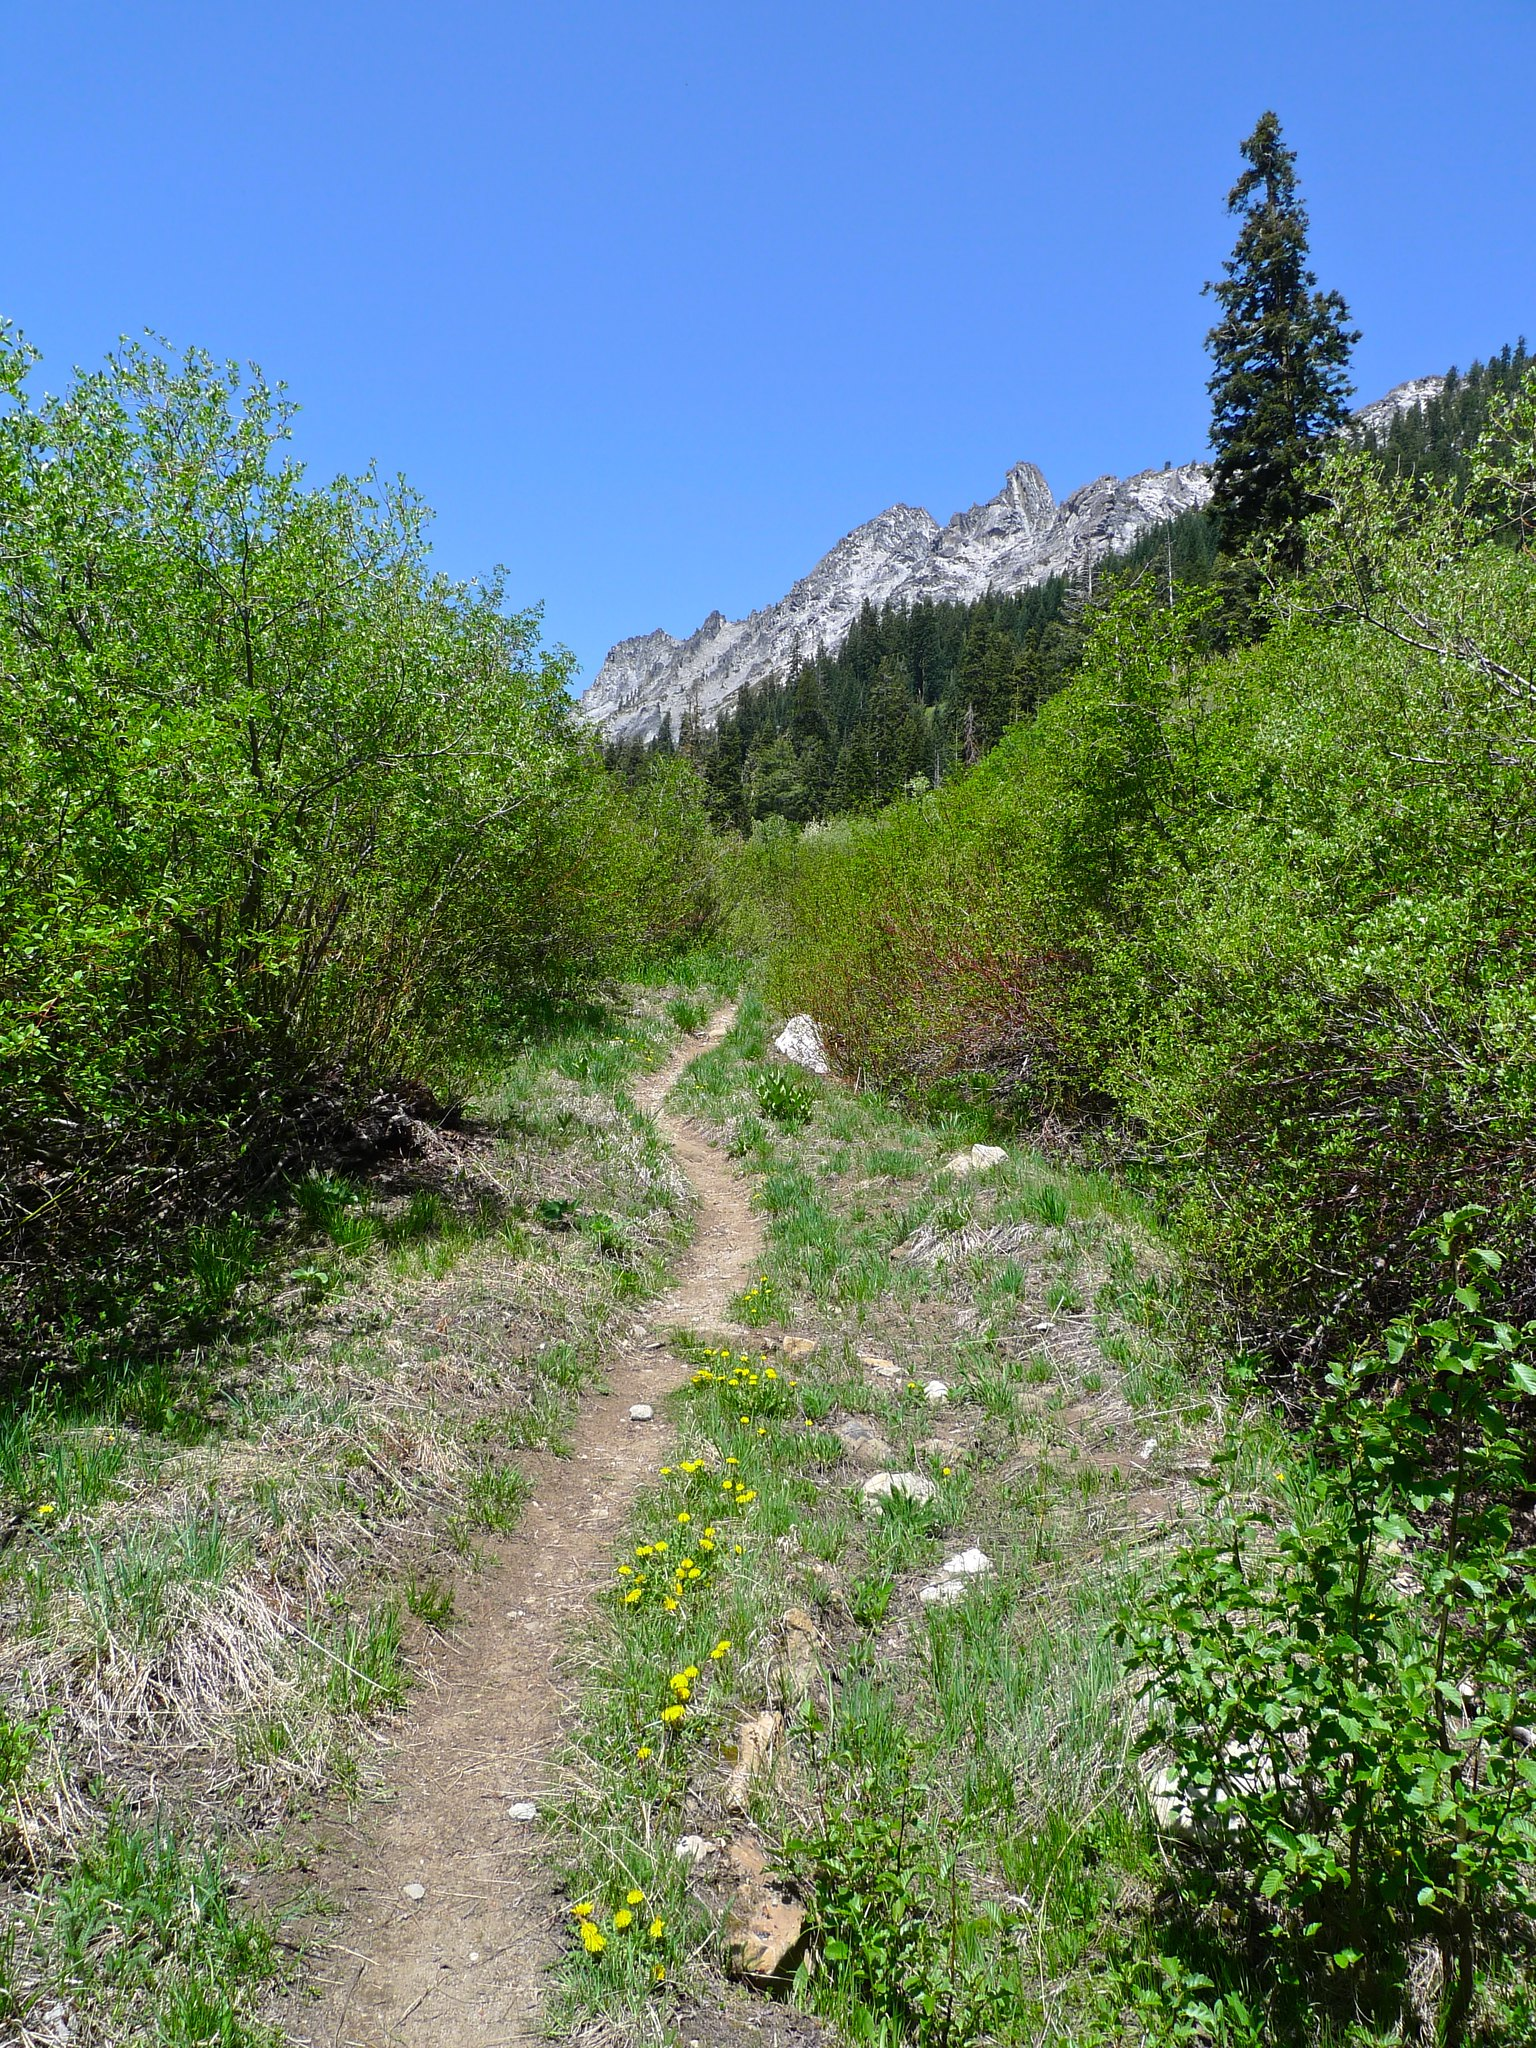 The trail exits the forest and the views begin to open up to Gibson peak